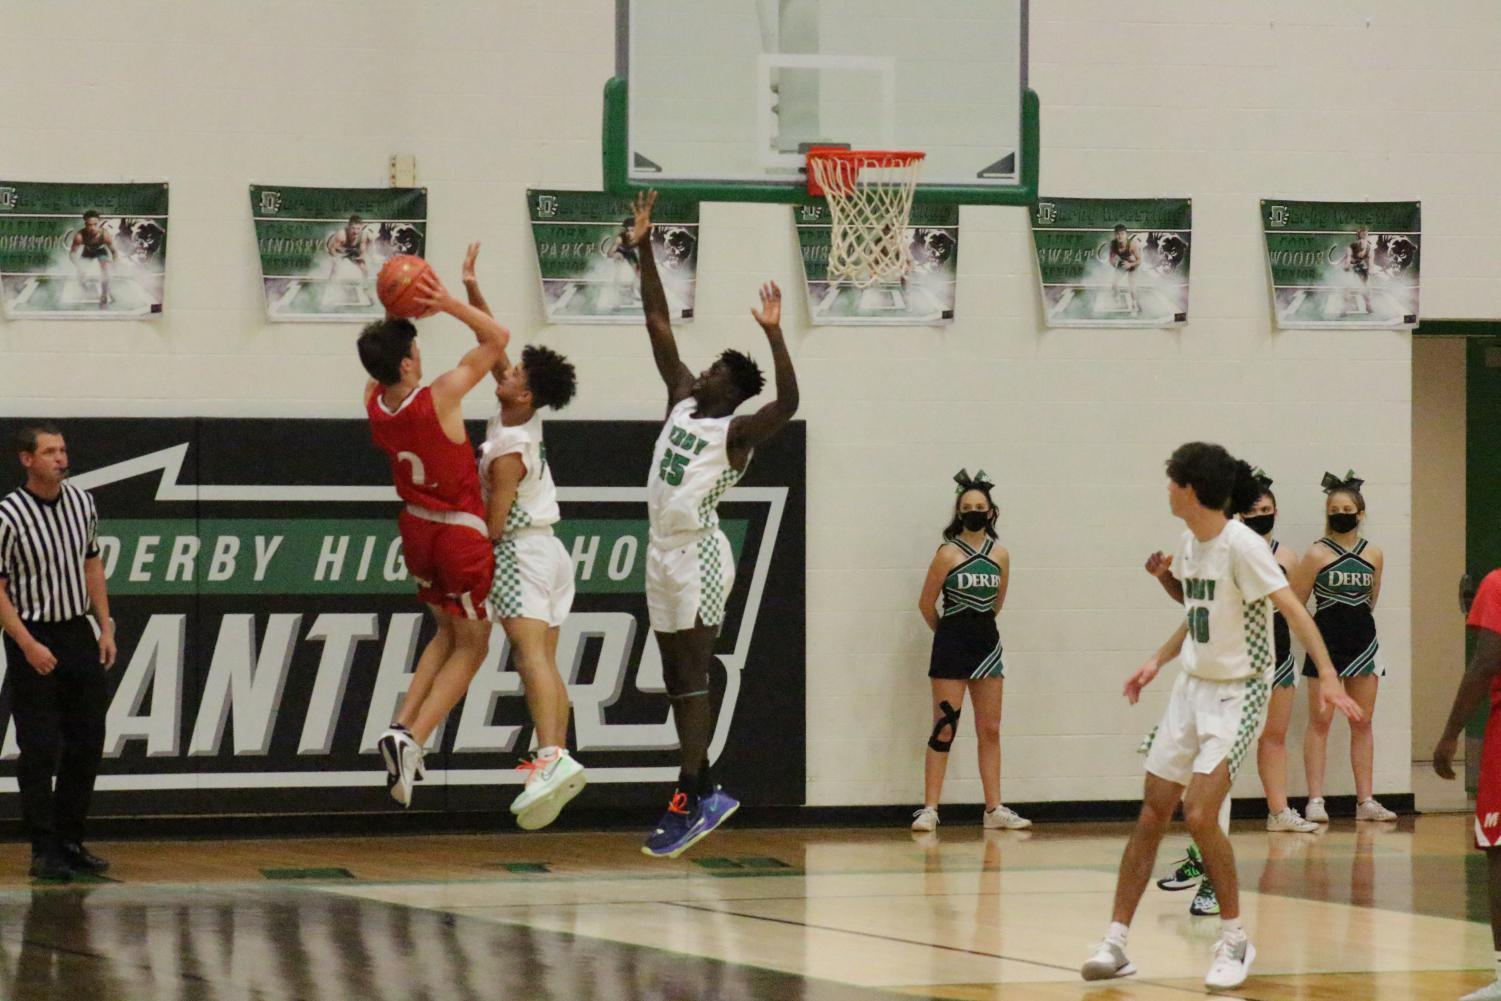 Boys+basketball+vs.+Maize+%28Photos+by+Janeah+Berry%29